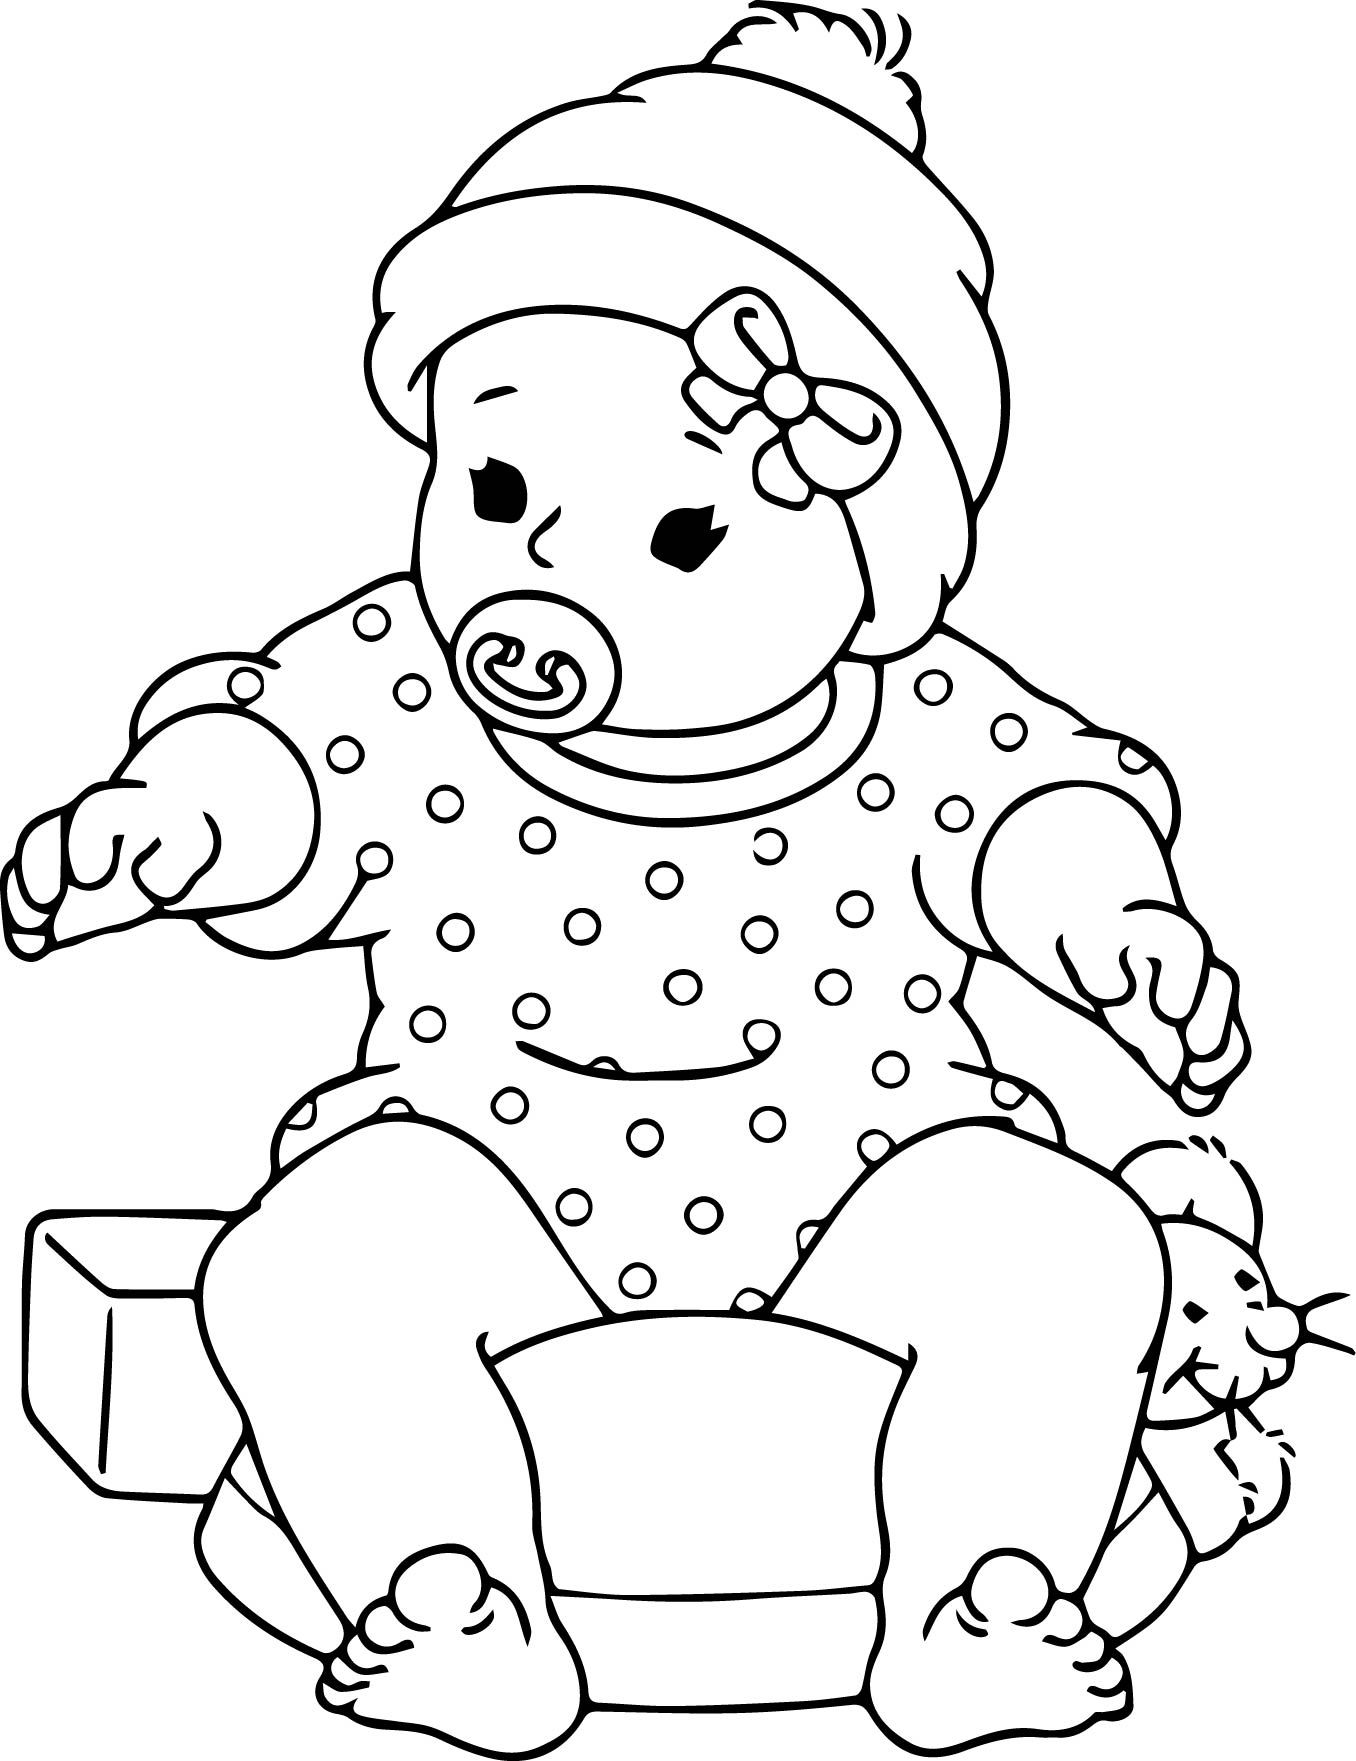 baby doll coloring pages Free Printable Baby Doll Coloring Pages Throughout Inside | Helen  baby doll coloring pages